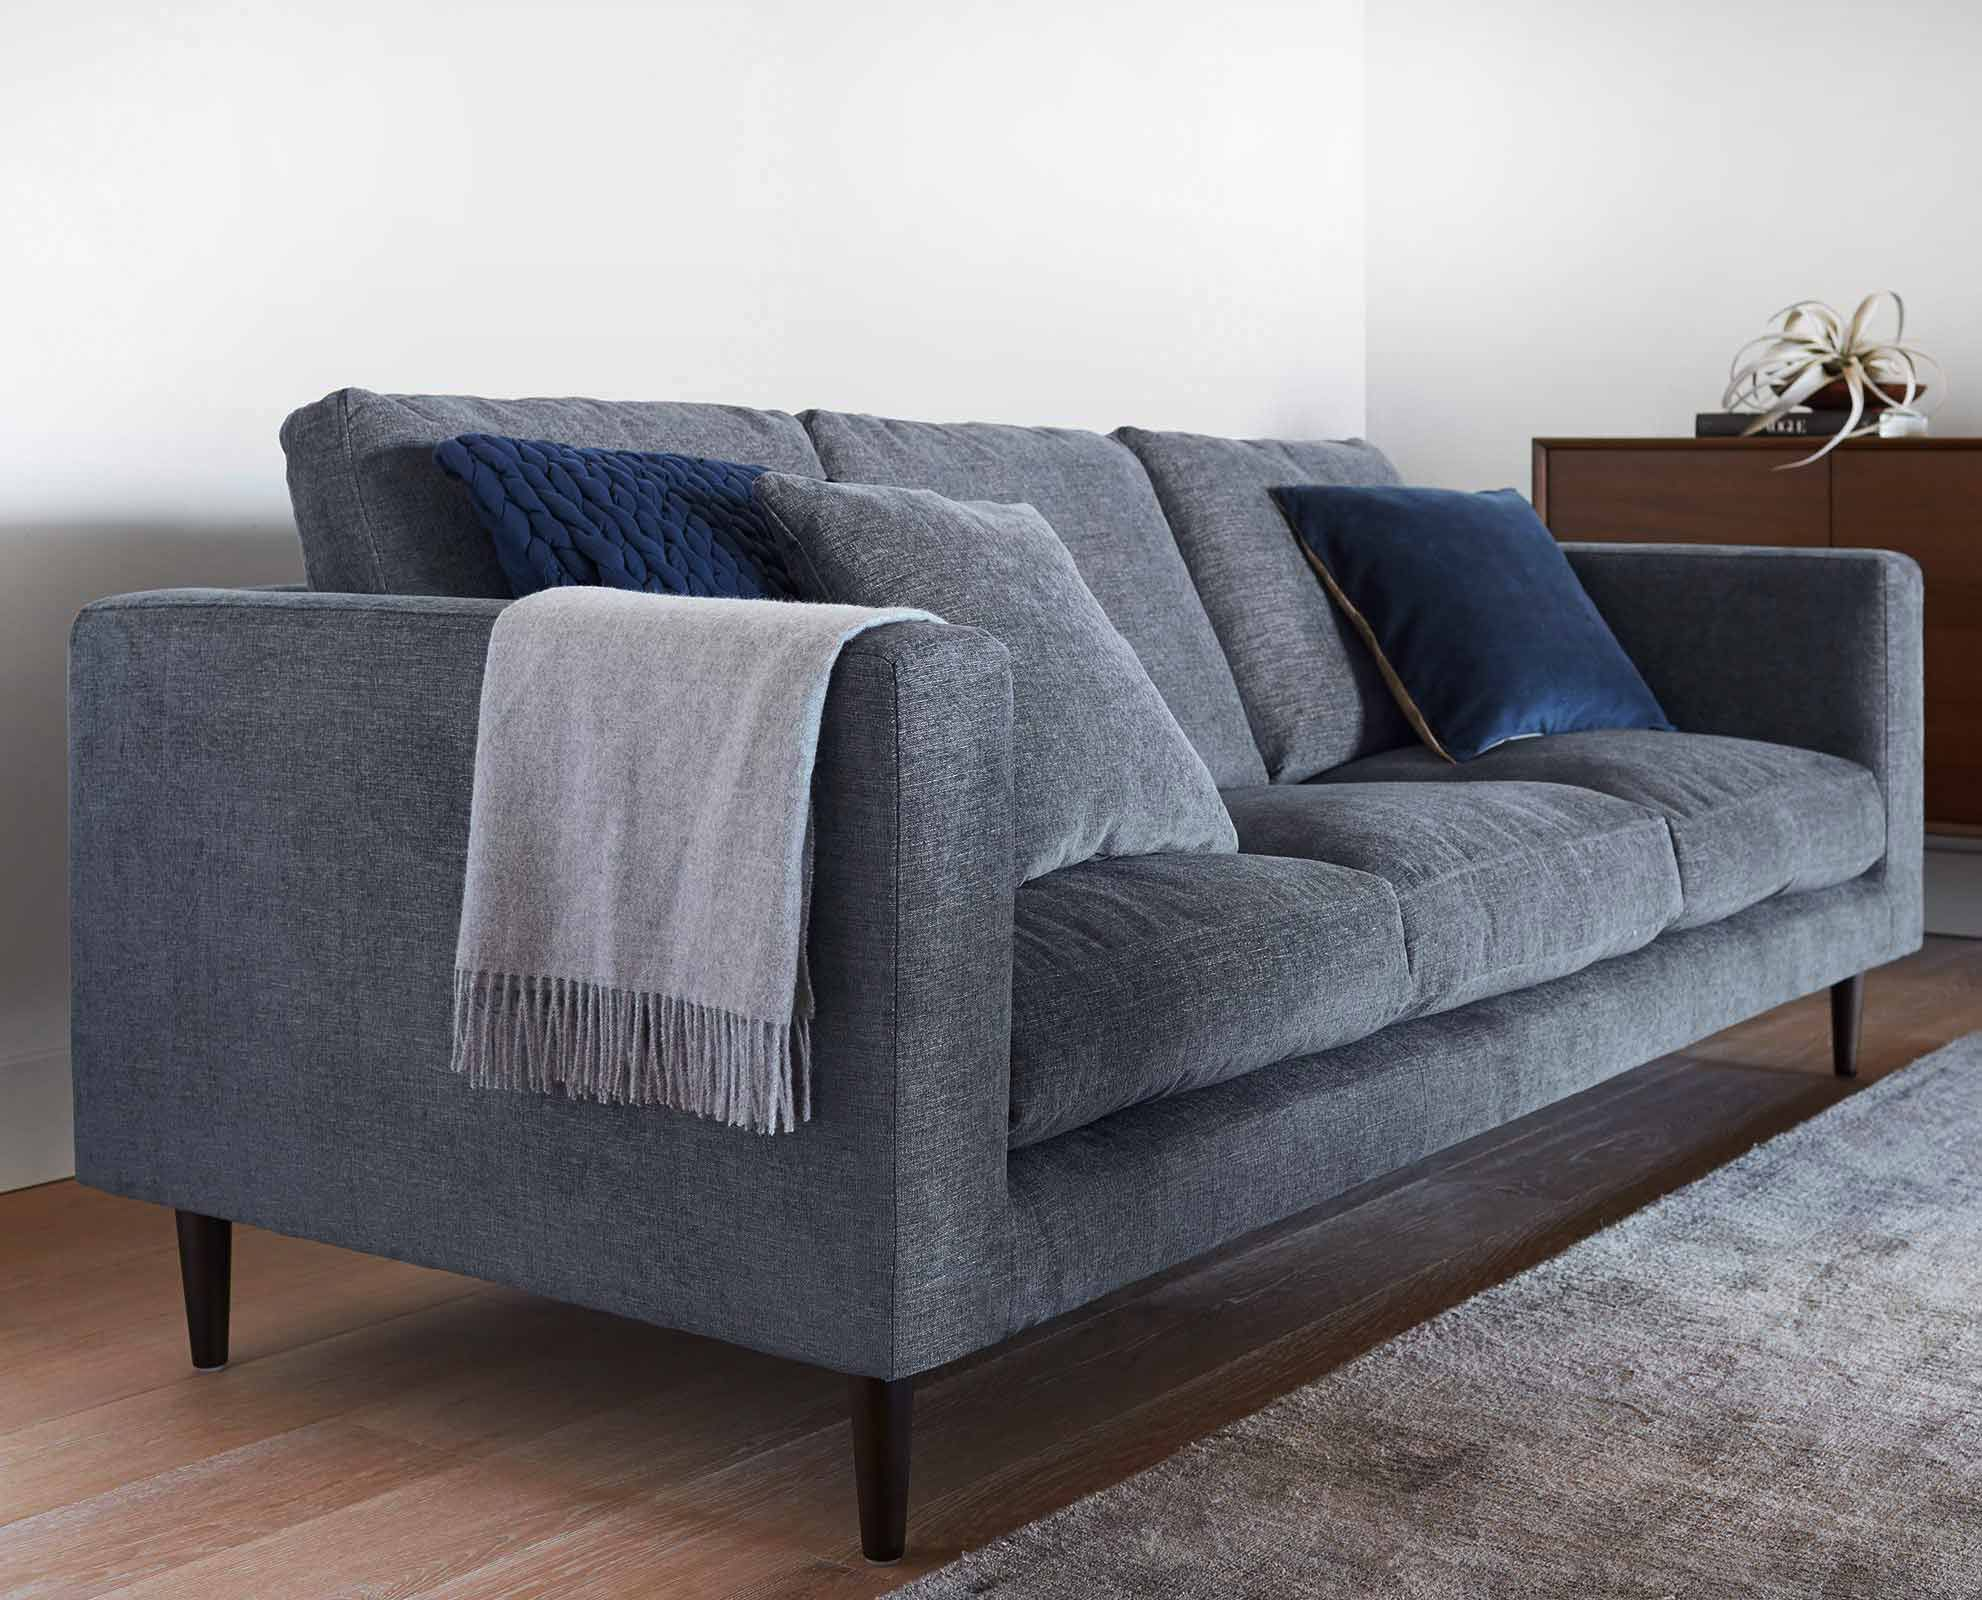 Dania The Hagen sofa offers refined mid century modern style